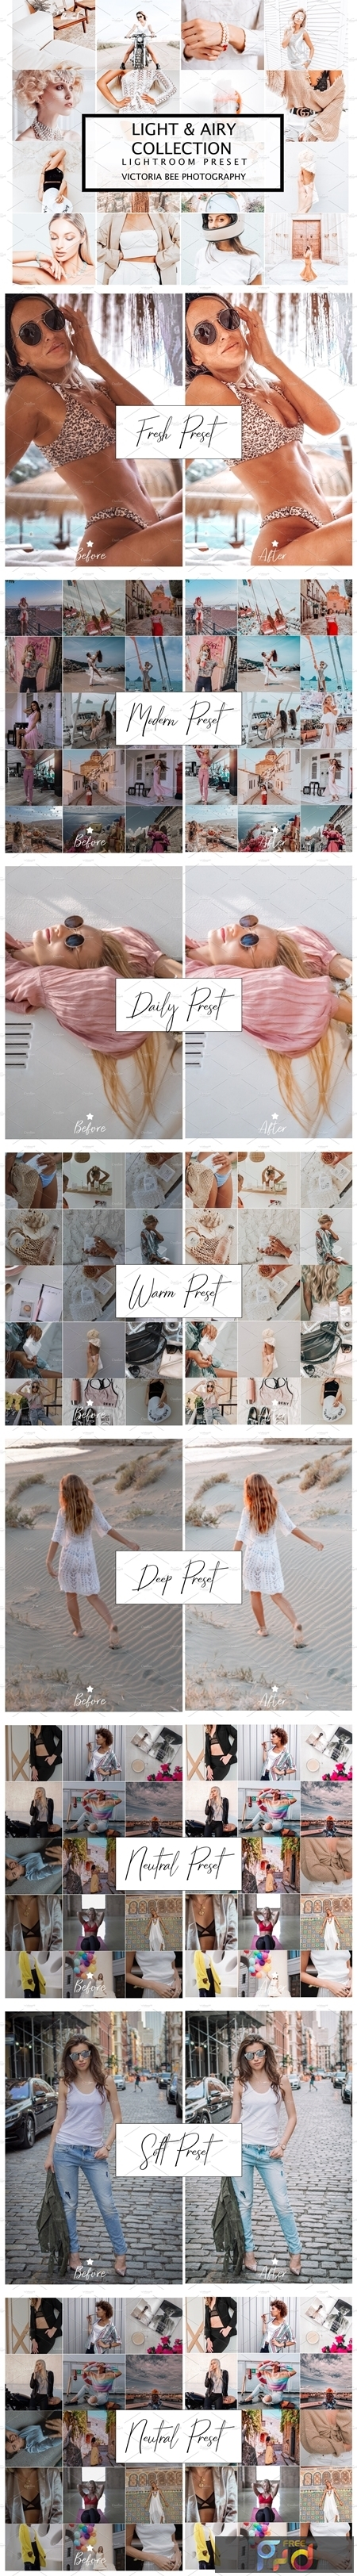 10 LIGHT & AIRY LIGHTROOM PRESETS 4196271 1